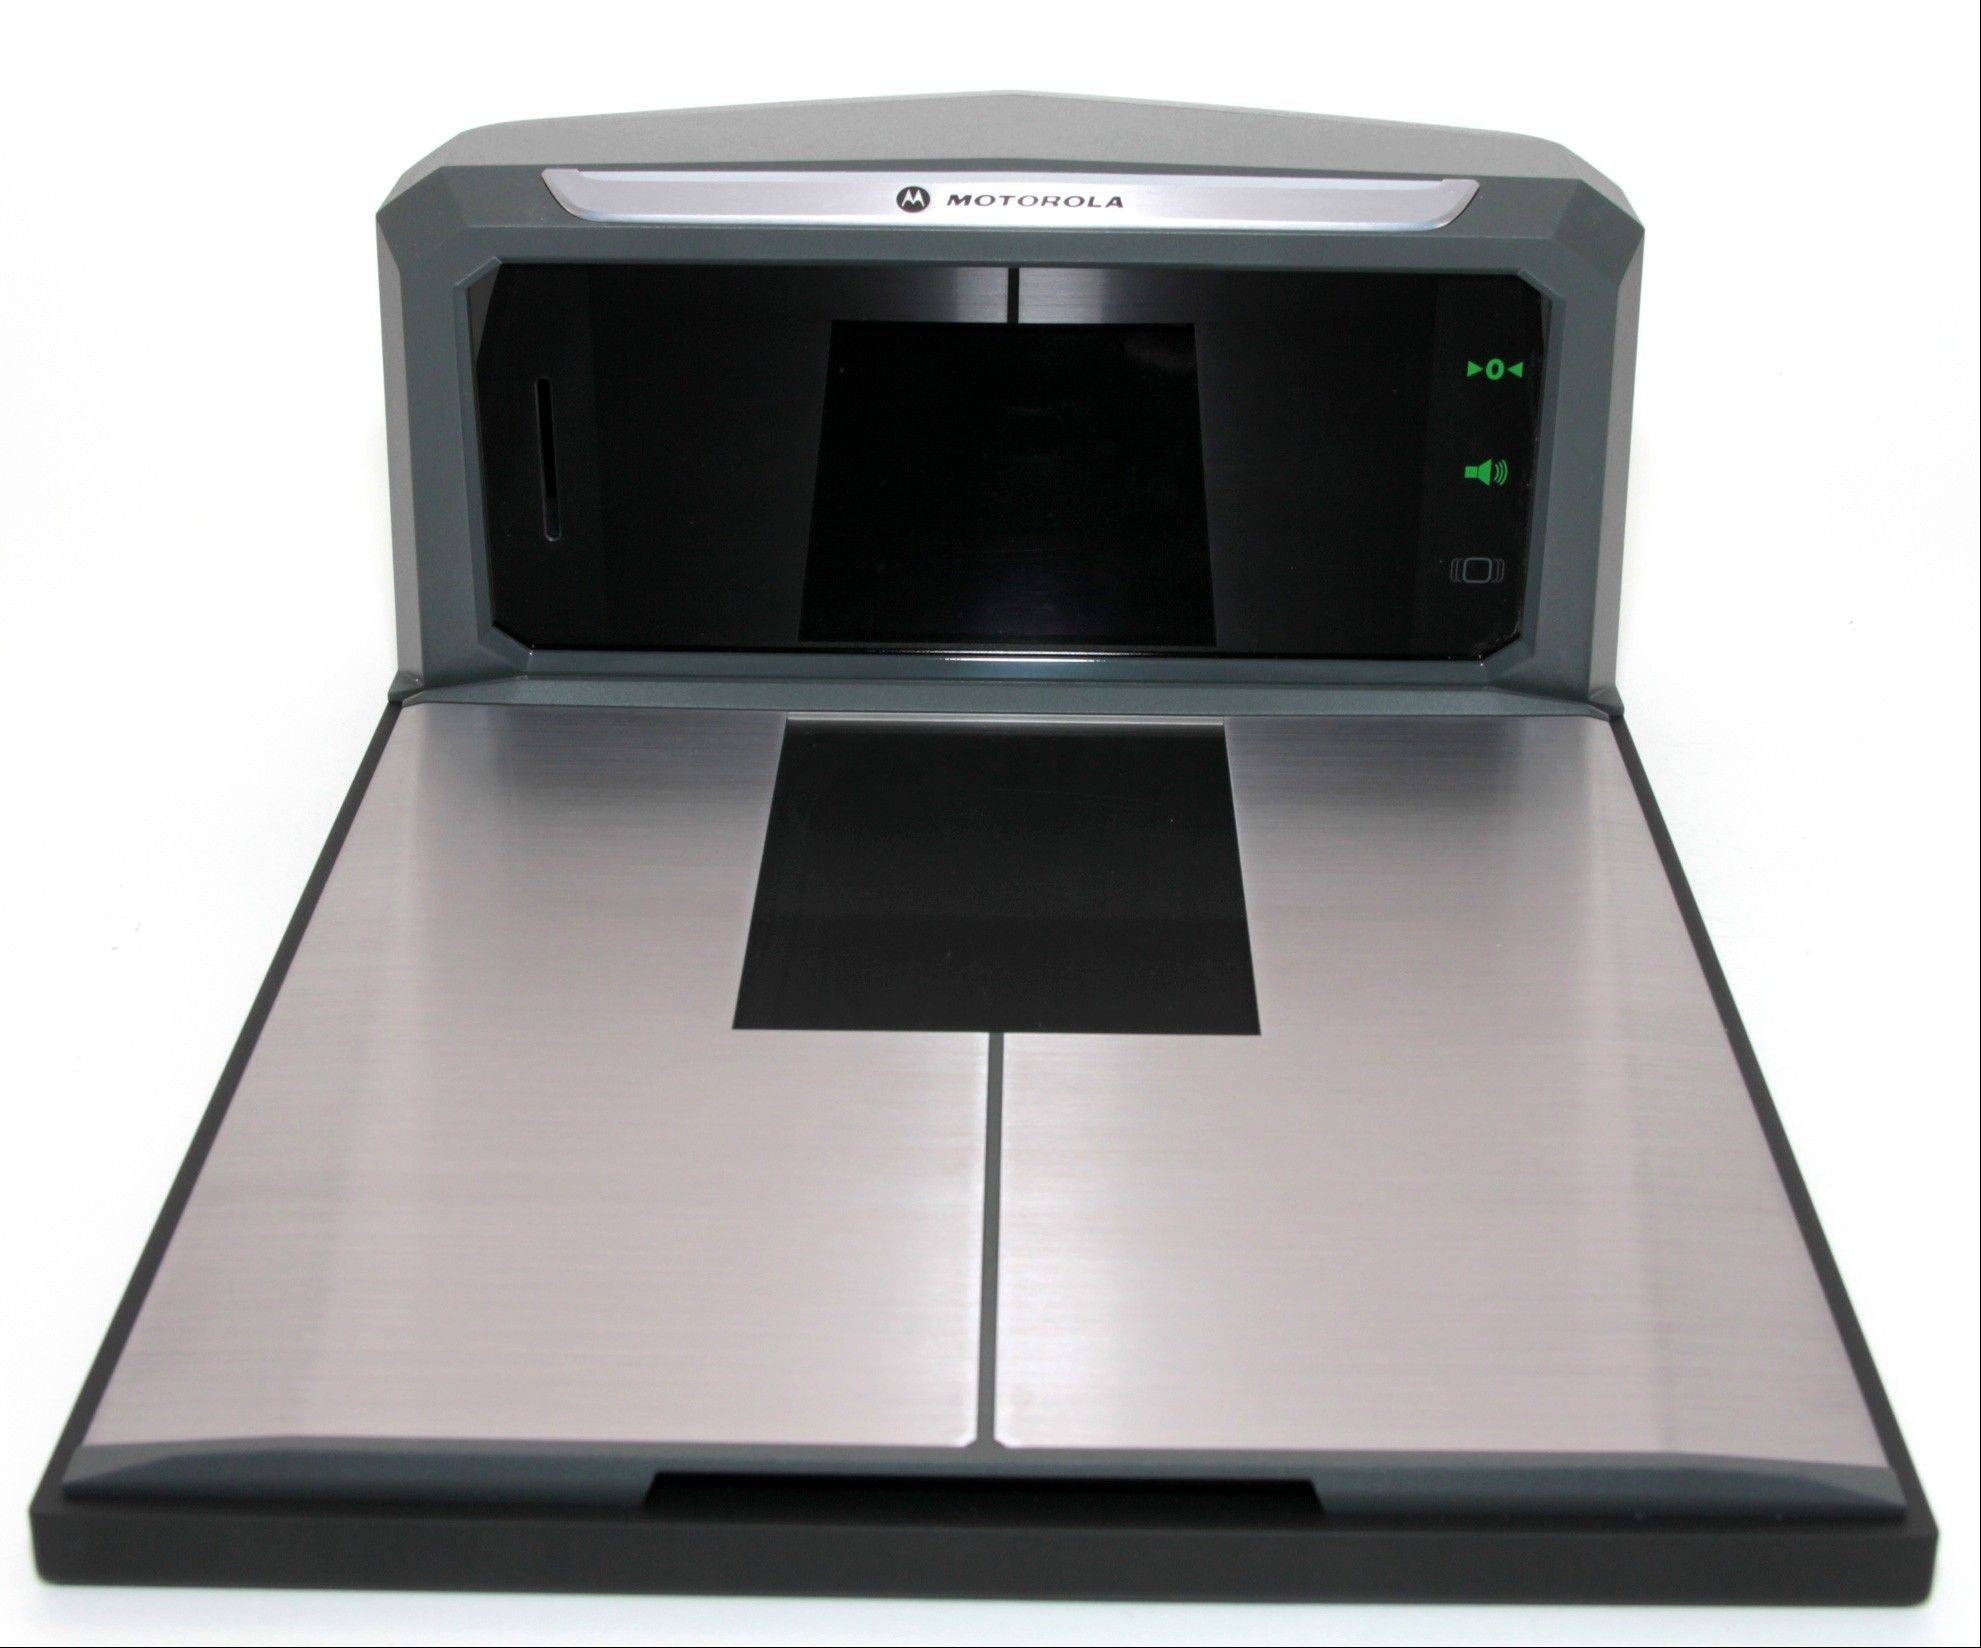 The MP6000 scanner/scale could be coming soon to a retailer near you. It will more easily scan bar codes on products and even accept your loyalty card or coupons directly from any smartphone or tablet. Schaumburg-based Motorola Solutions plans to unveil the device early next week.